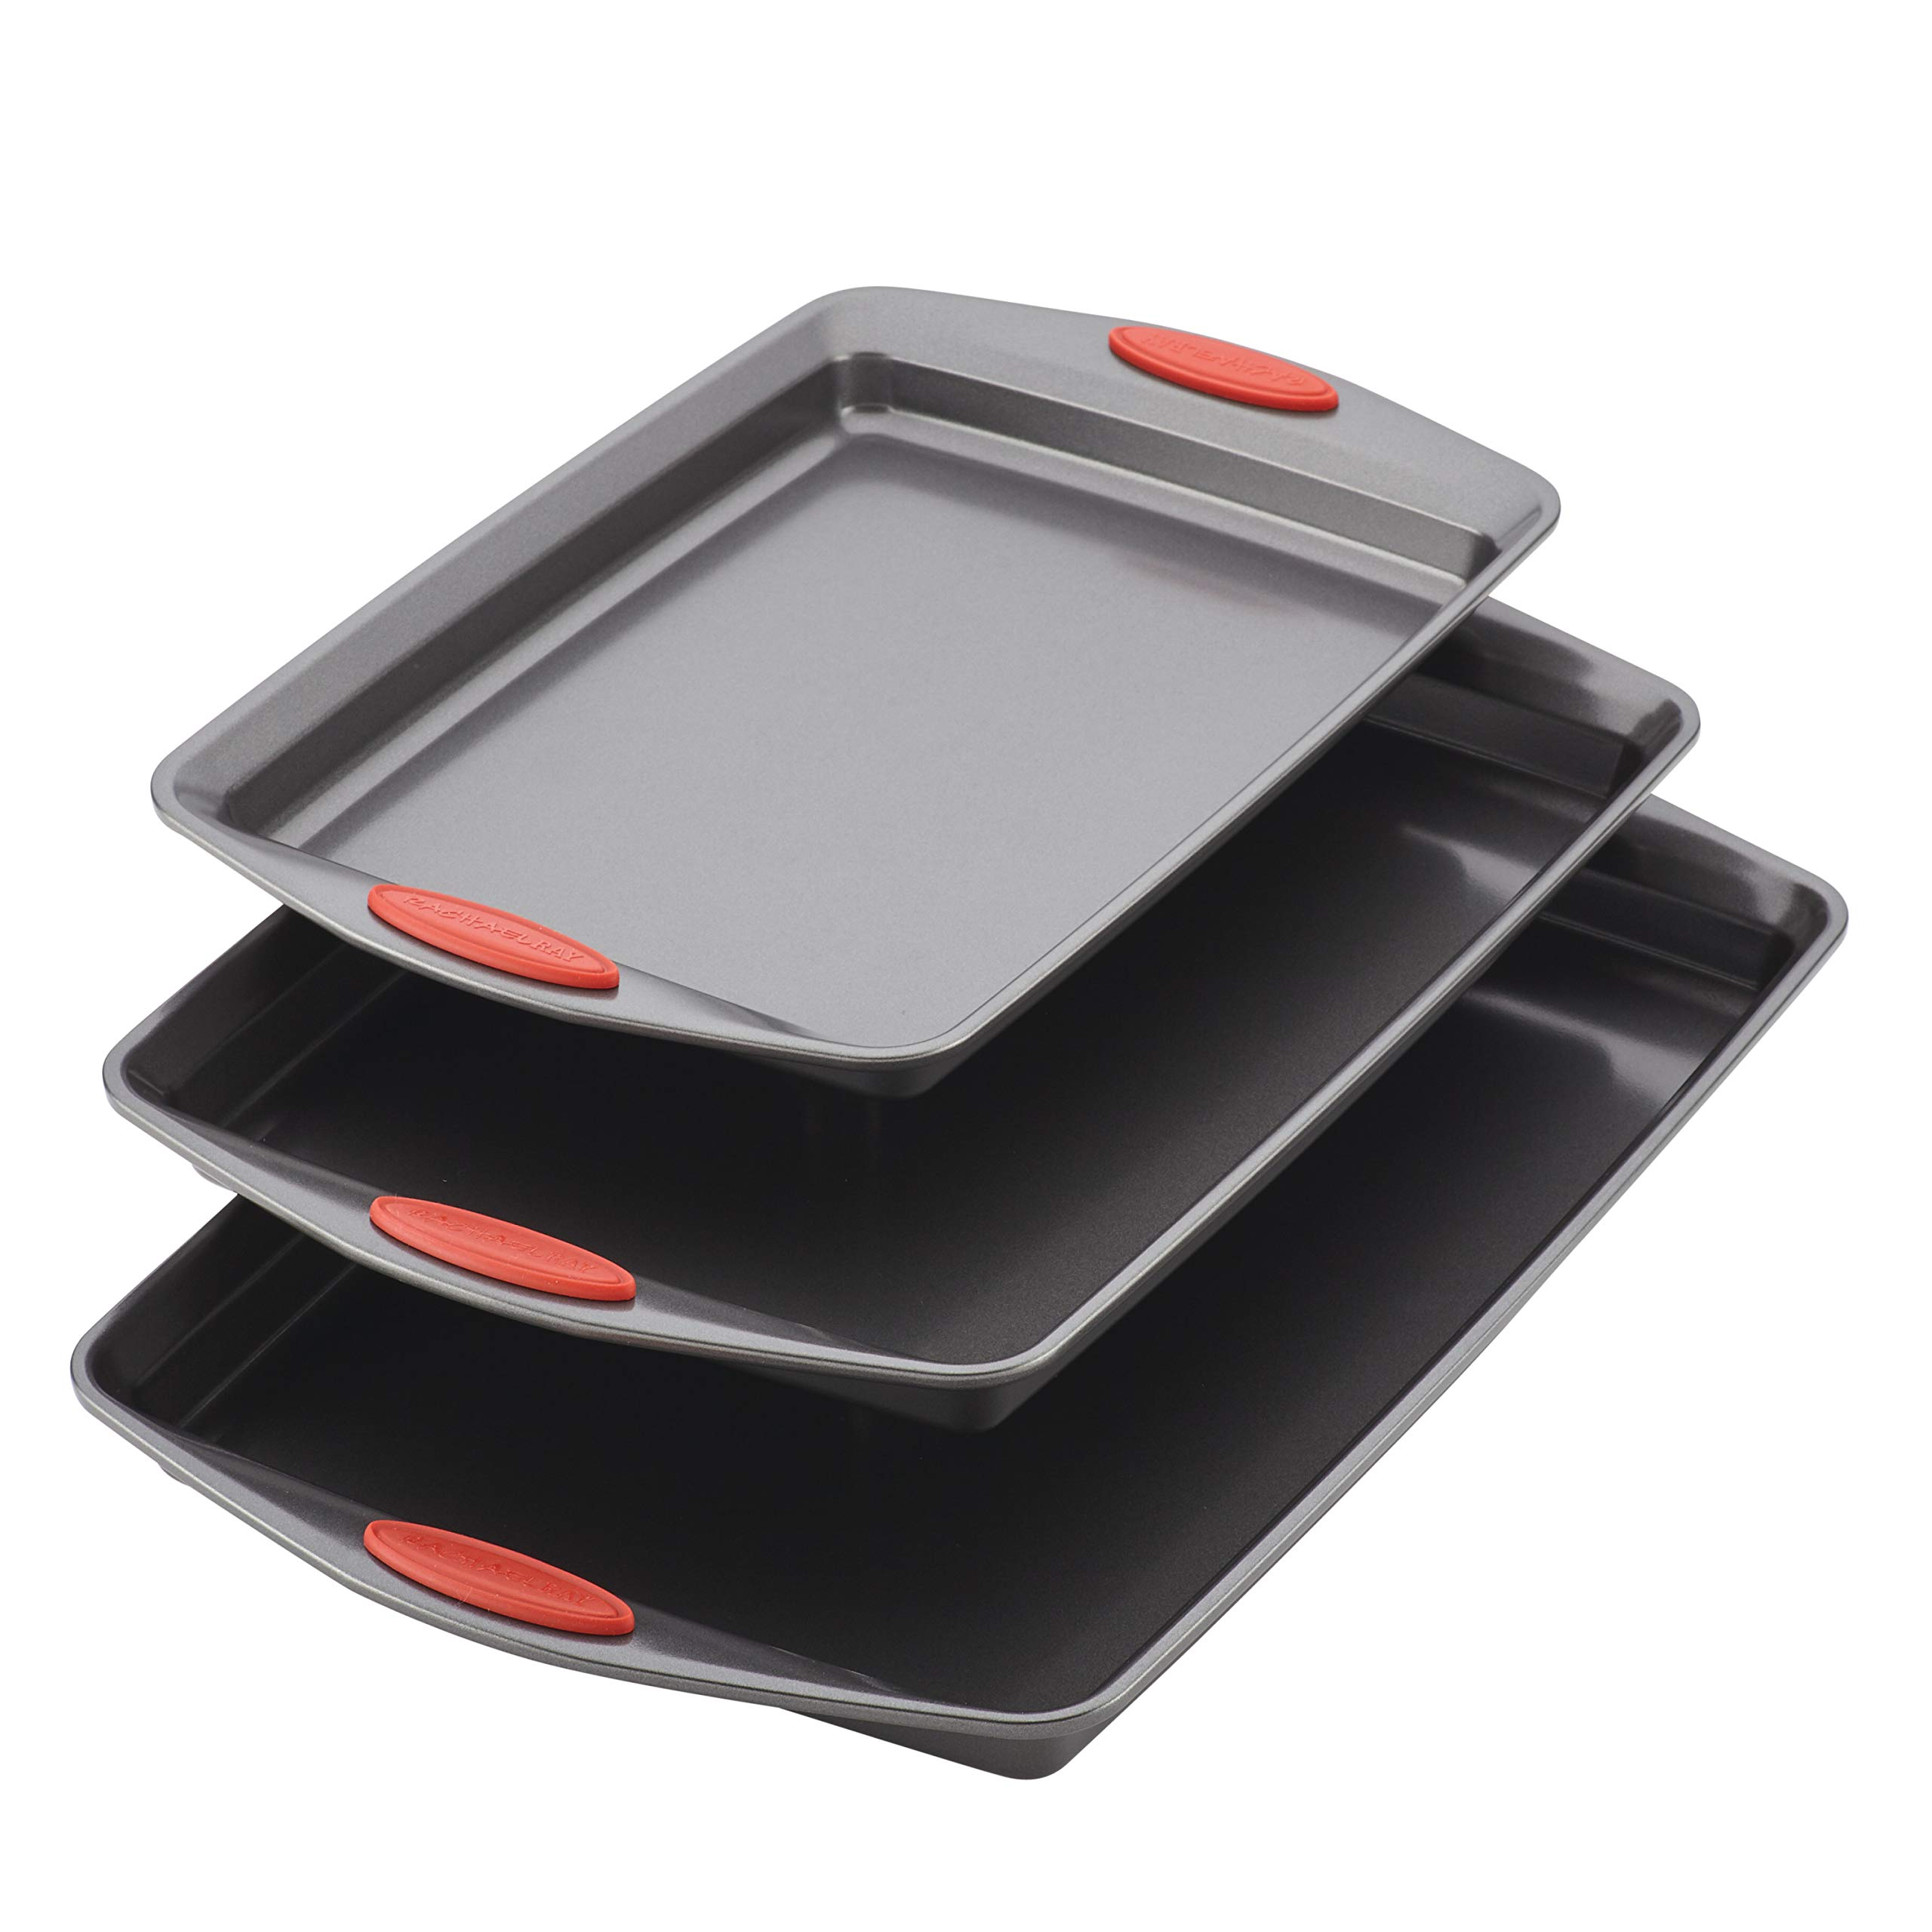 Rachael Ray 47423 3-Piece Cookie Pan Steel Baking Sheet Set, Gray with Red Grips